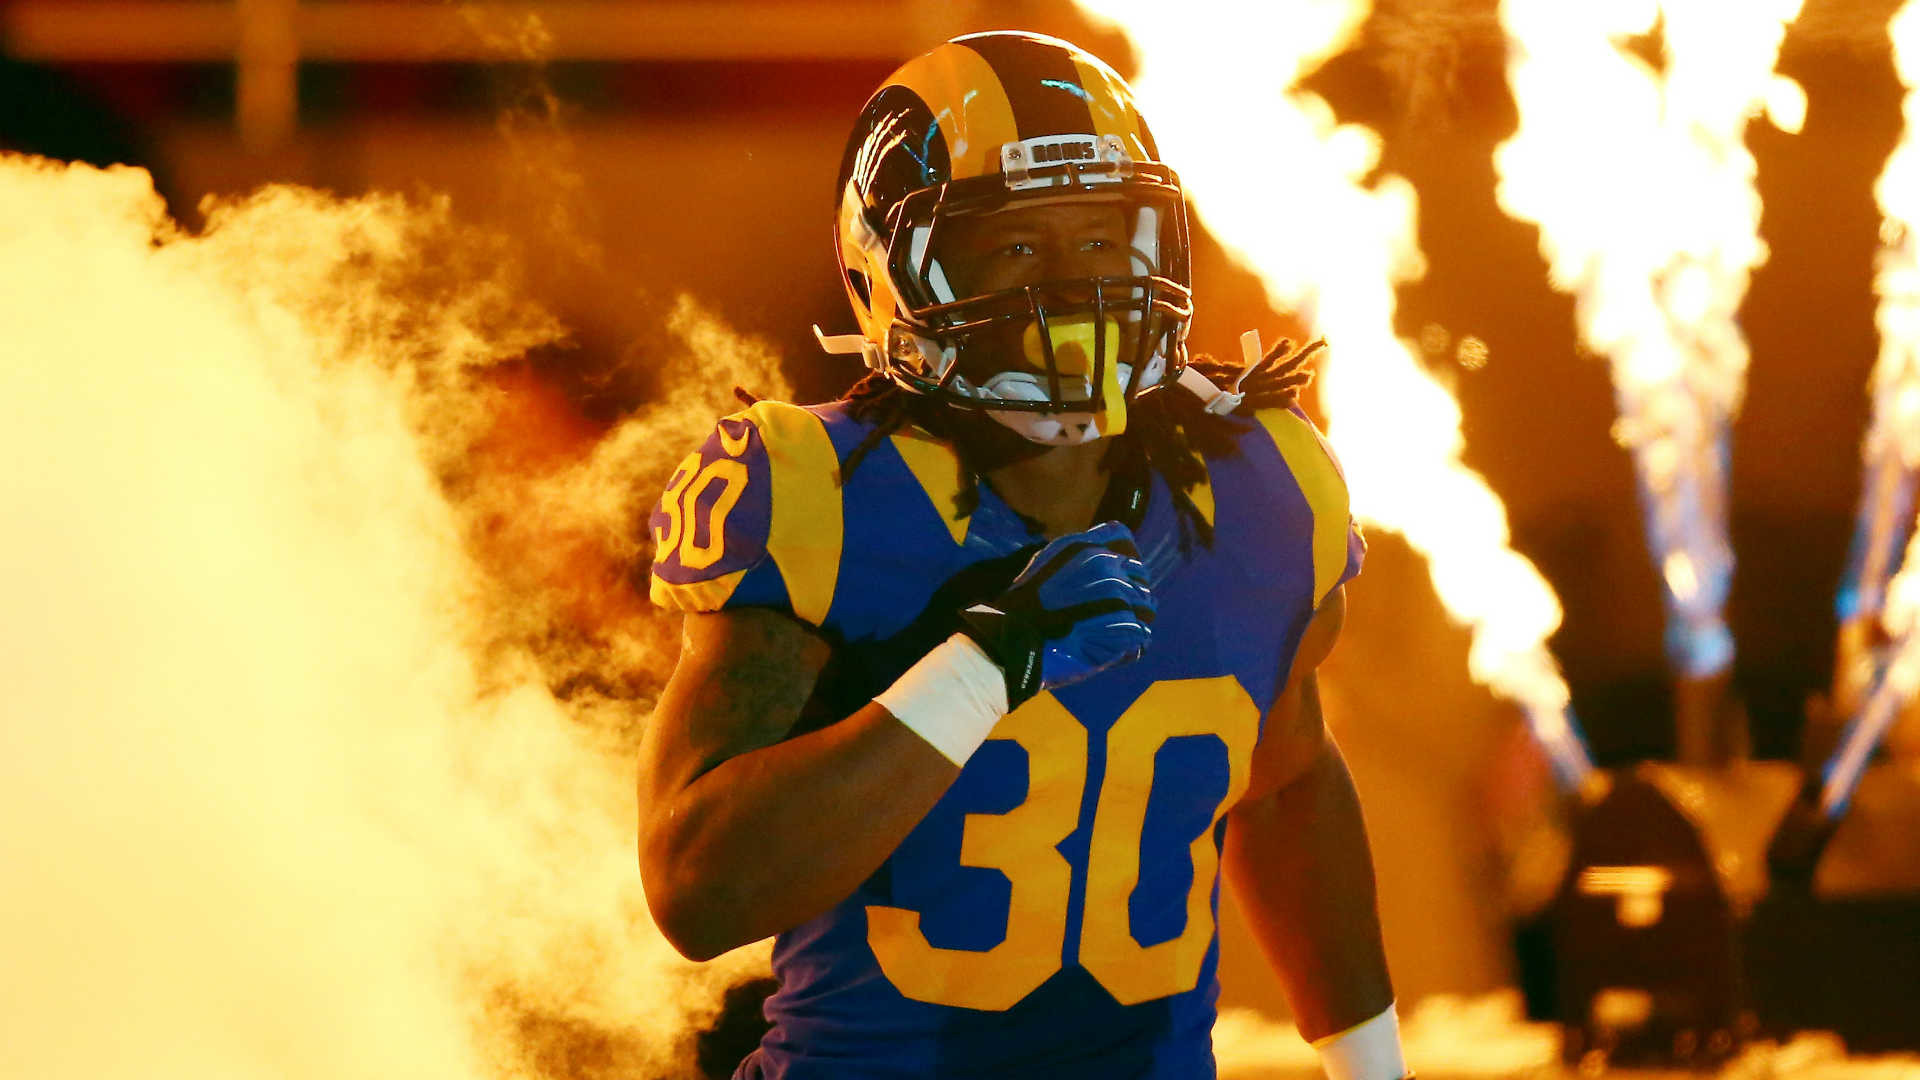 NFL rookie rankings: Todd Gurley dethrones Amari Cooper as top youngster    Sporting News